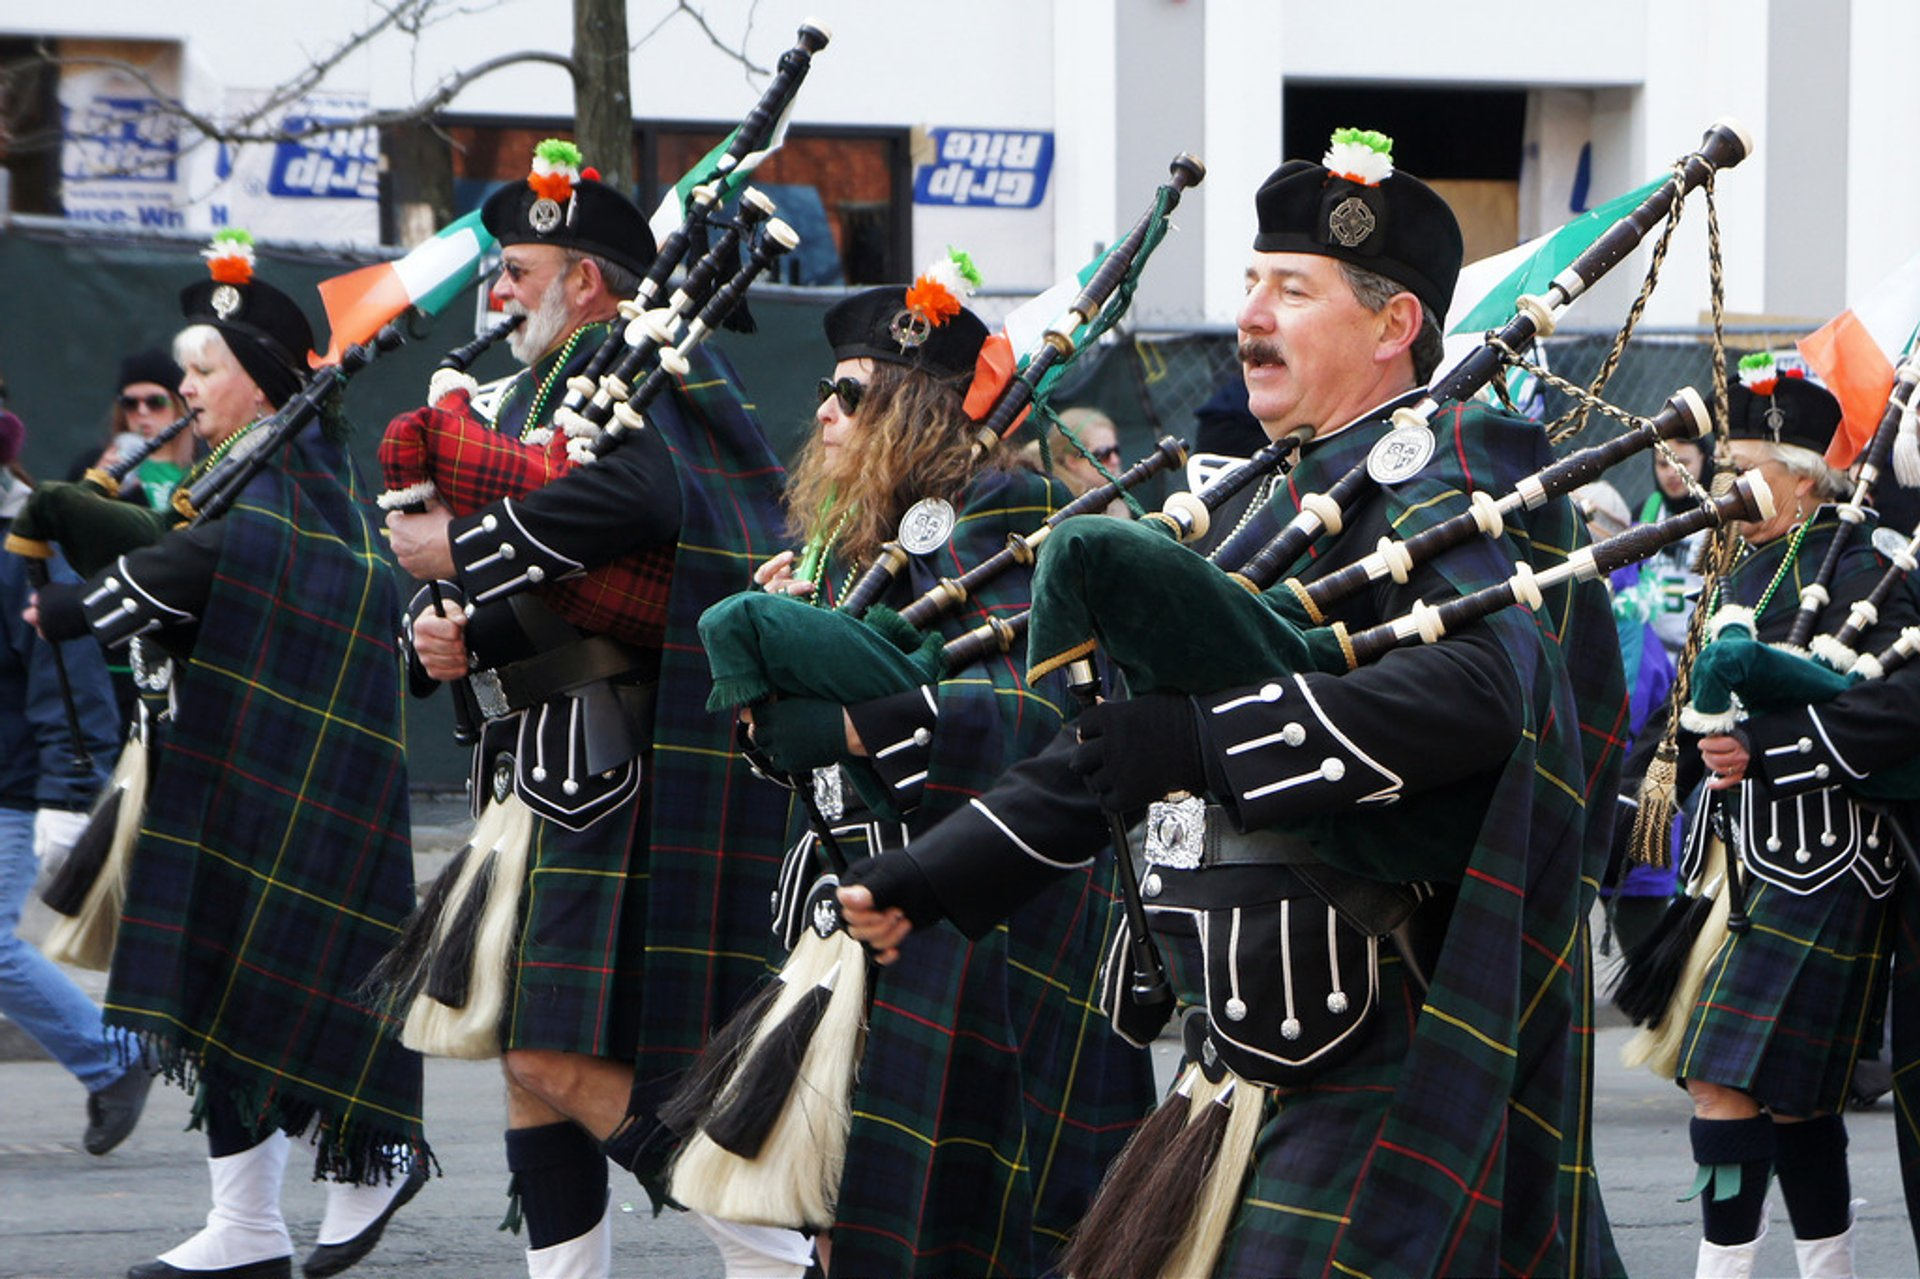 St. Patrick's Day Parade in Boston 2020 - Best Time